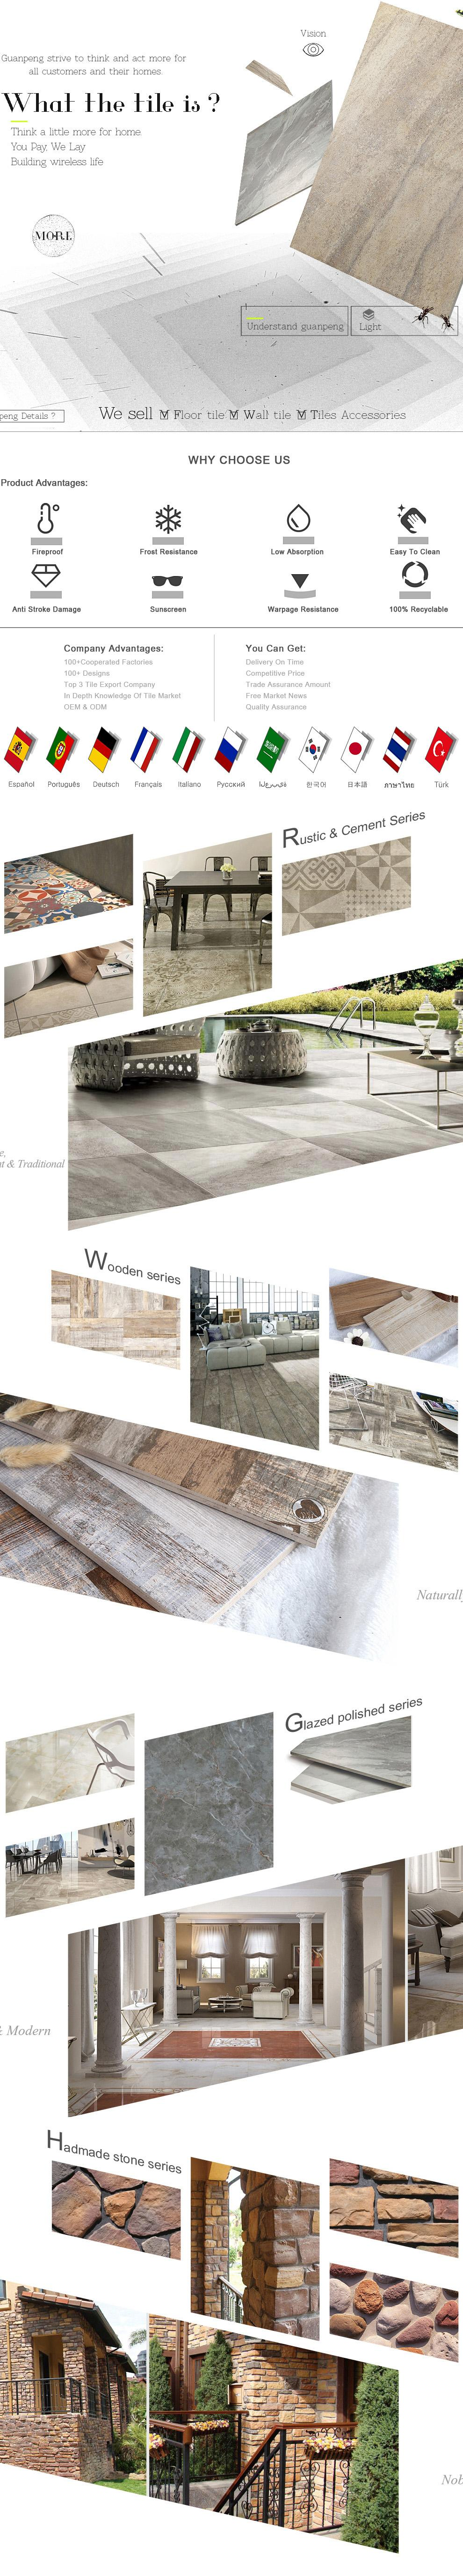 Quanzhou Guanpeng Trading Co., Ltd. - ceramic tile,ceramic border